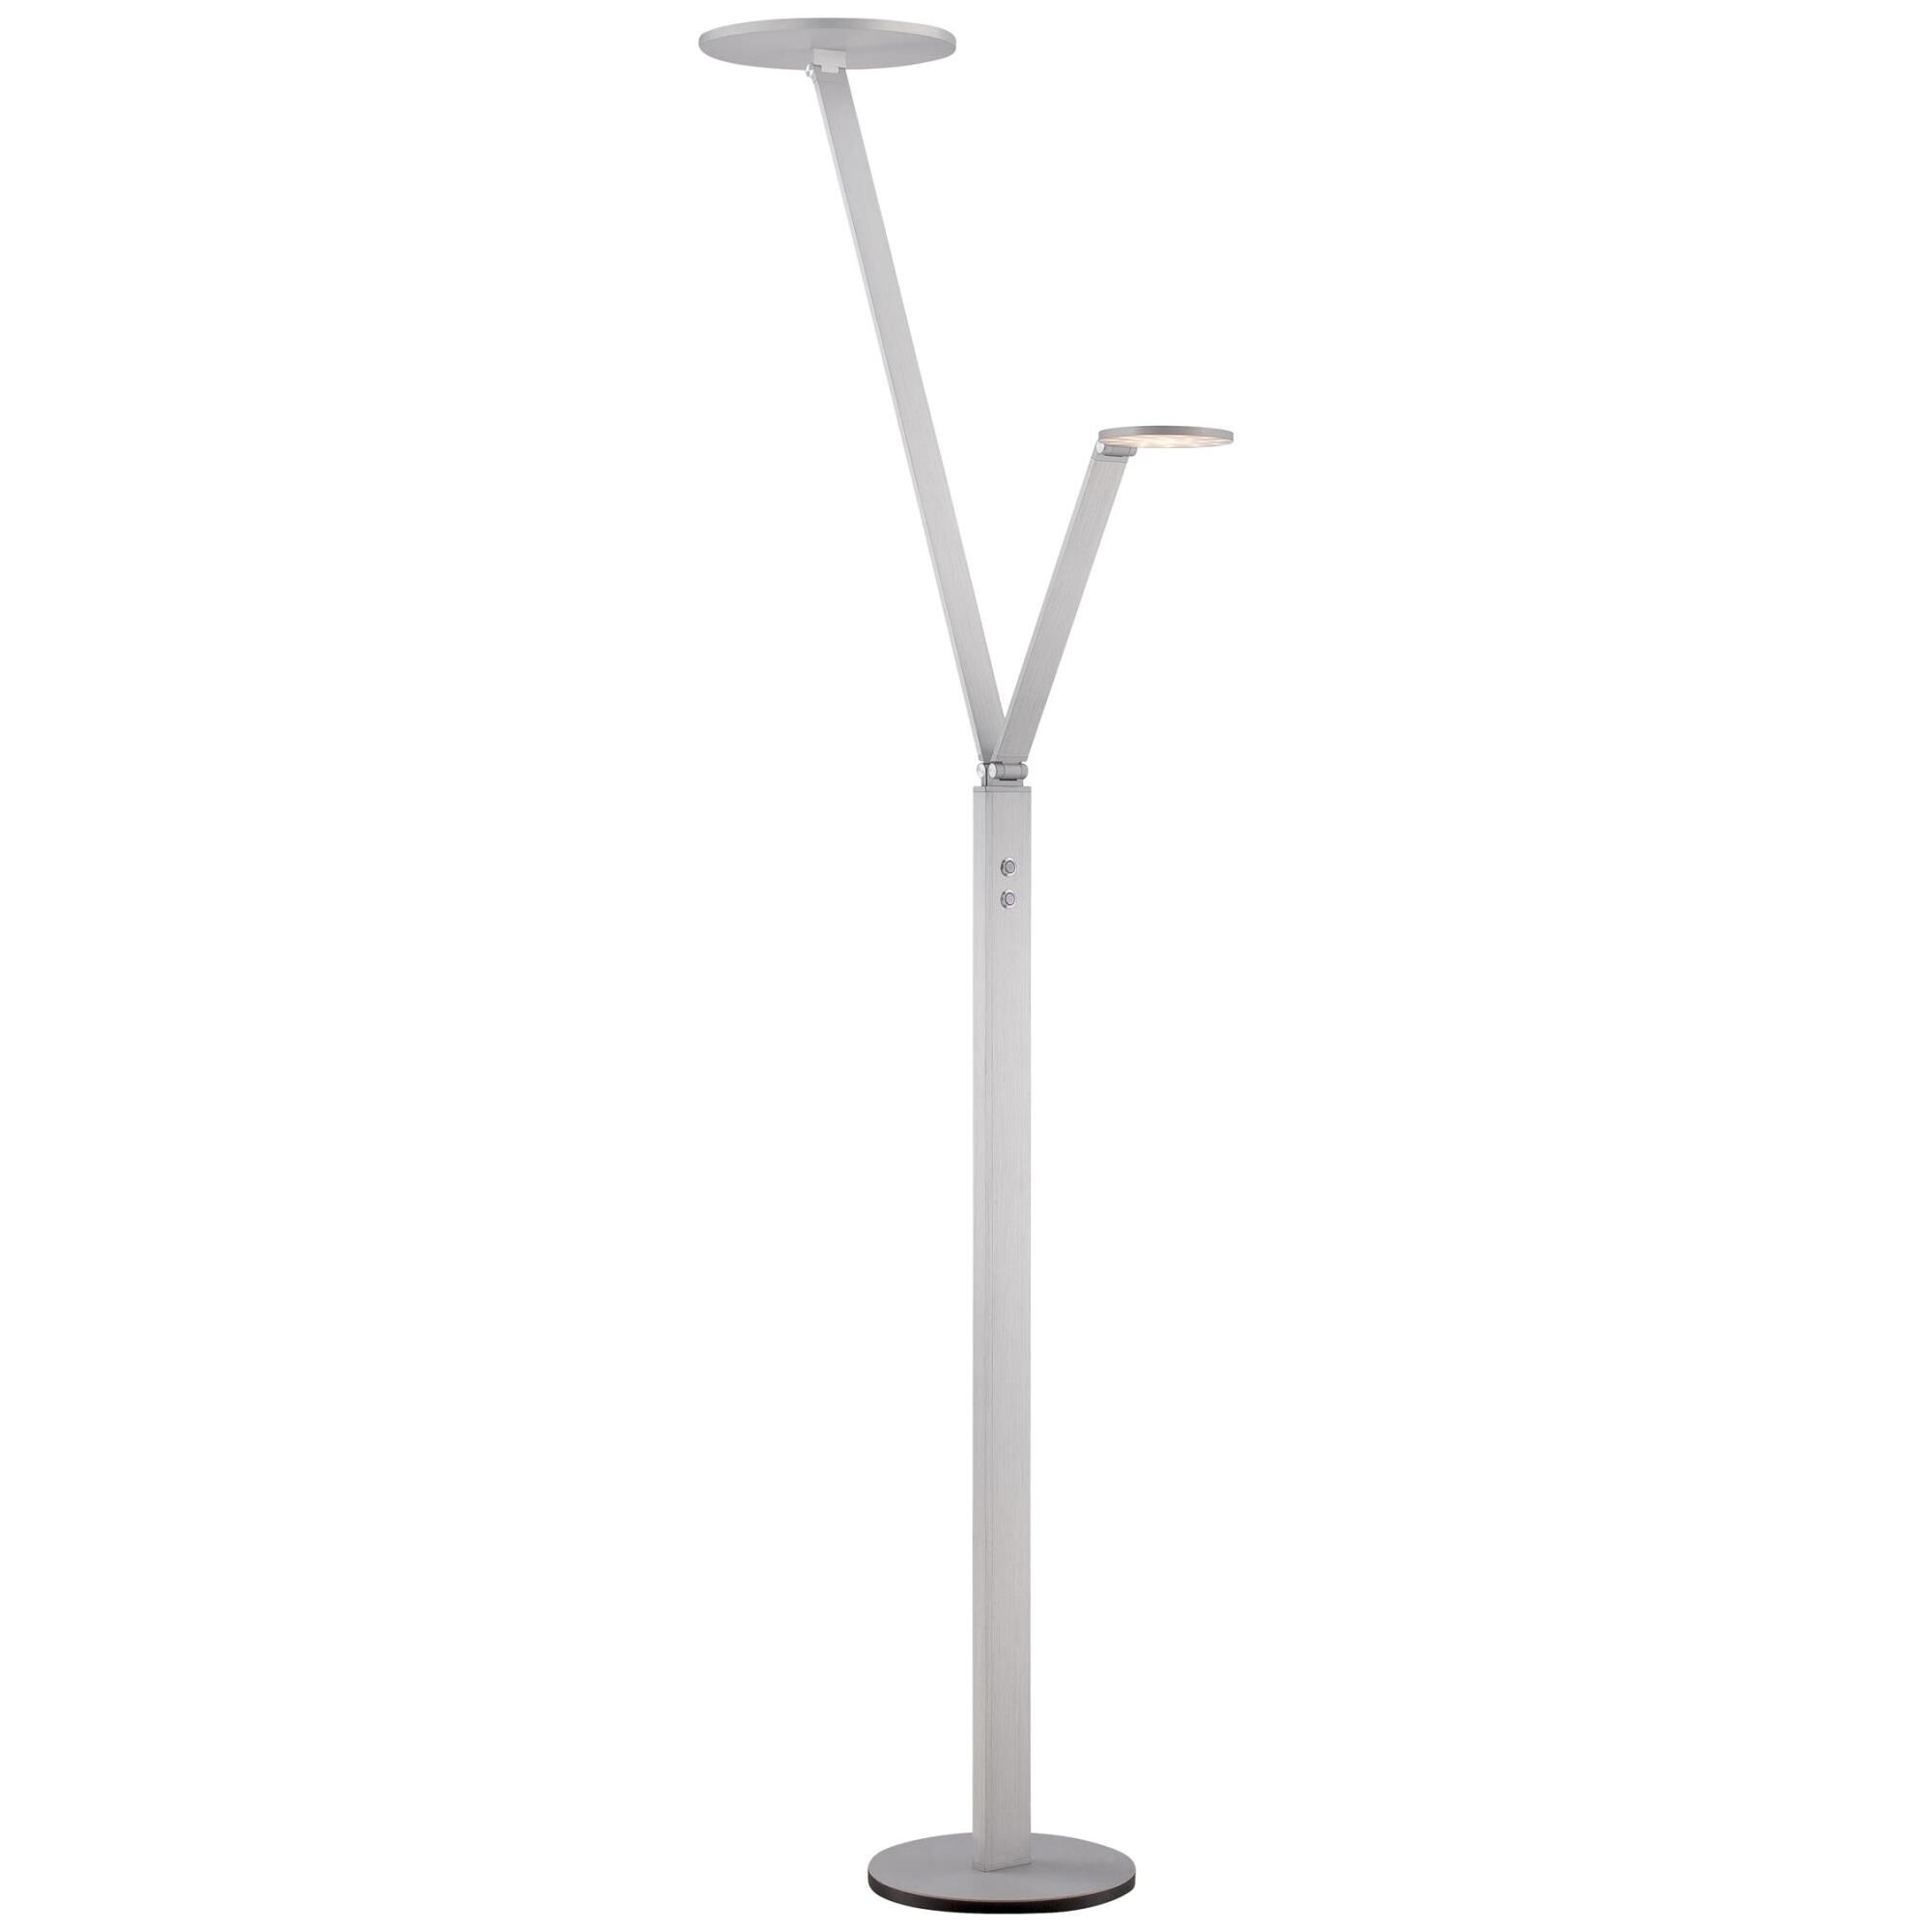 Kovacs 71 Inch Floor Lamp - P305-3-654-l - Modern Contemporary